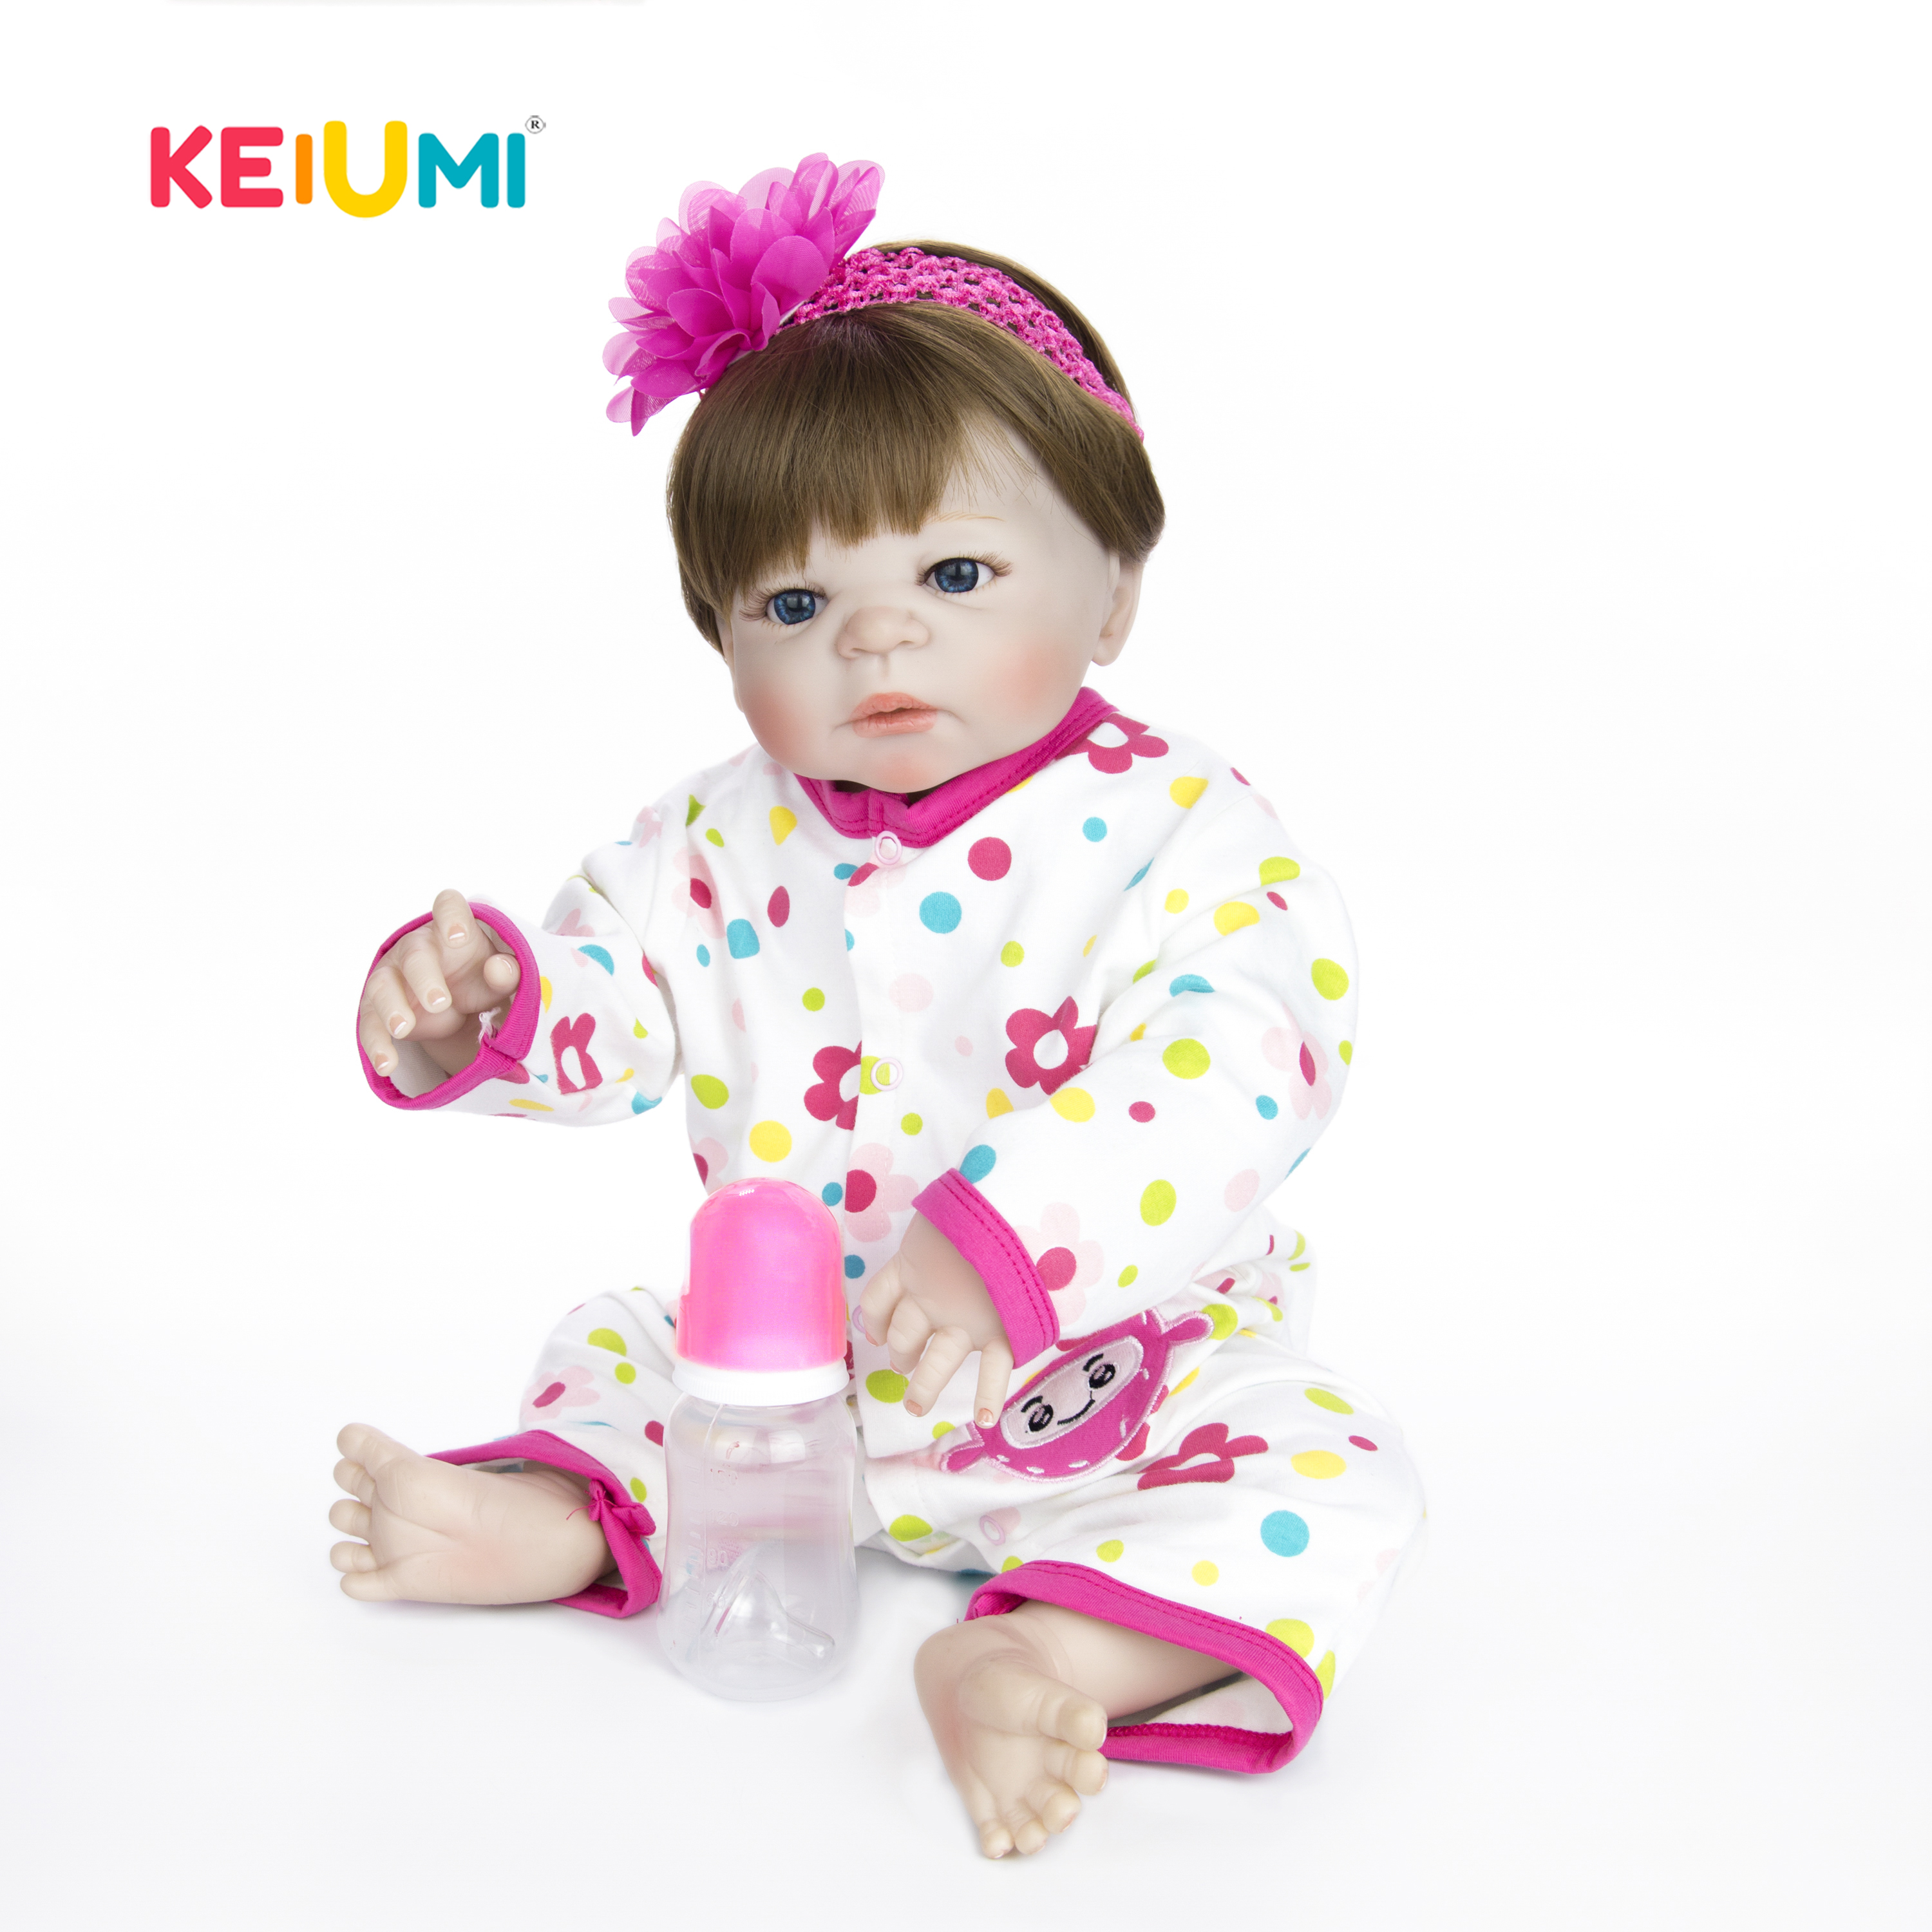 KEIUMI 23 inch White Skin Baby Dolls Newborn Lifelike Babies Full Silicone Vinyl Alive Doll Toy